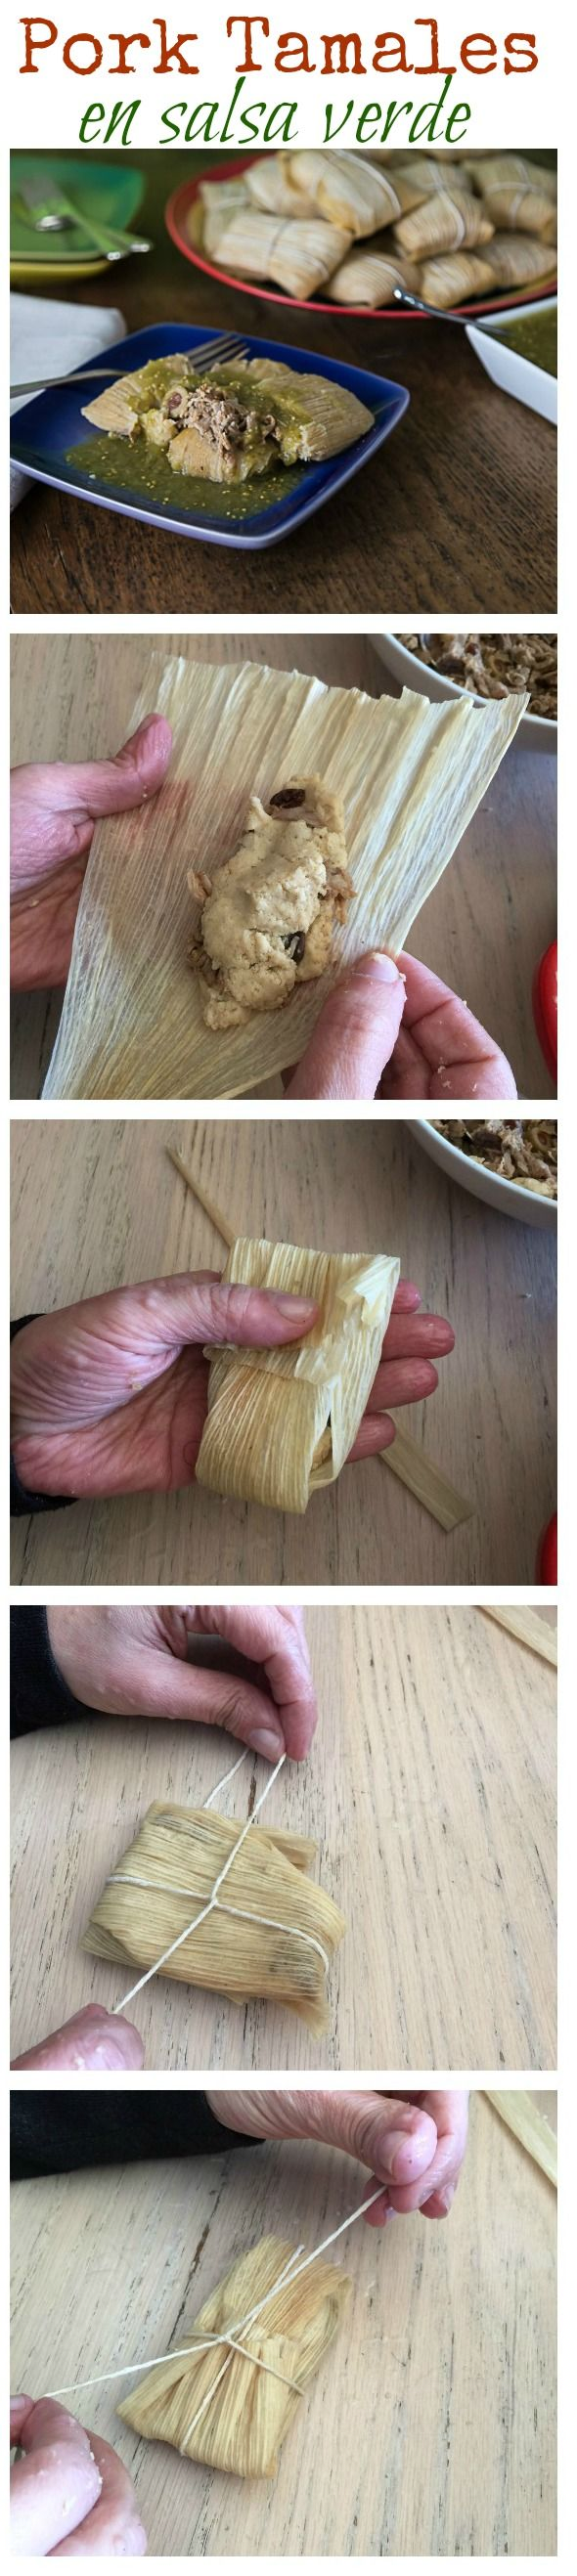 Pork tamales in salsa verde or casera. Delicious Mexican food recipes with Herdez